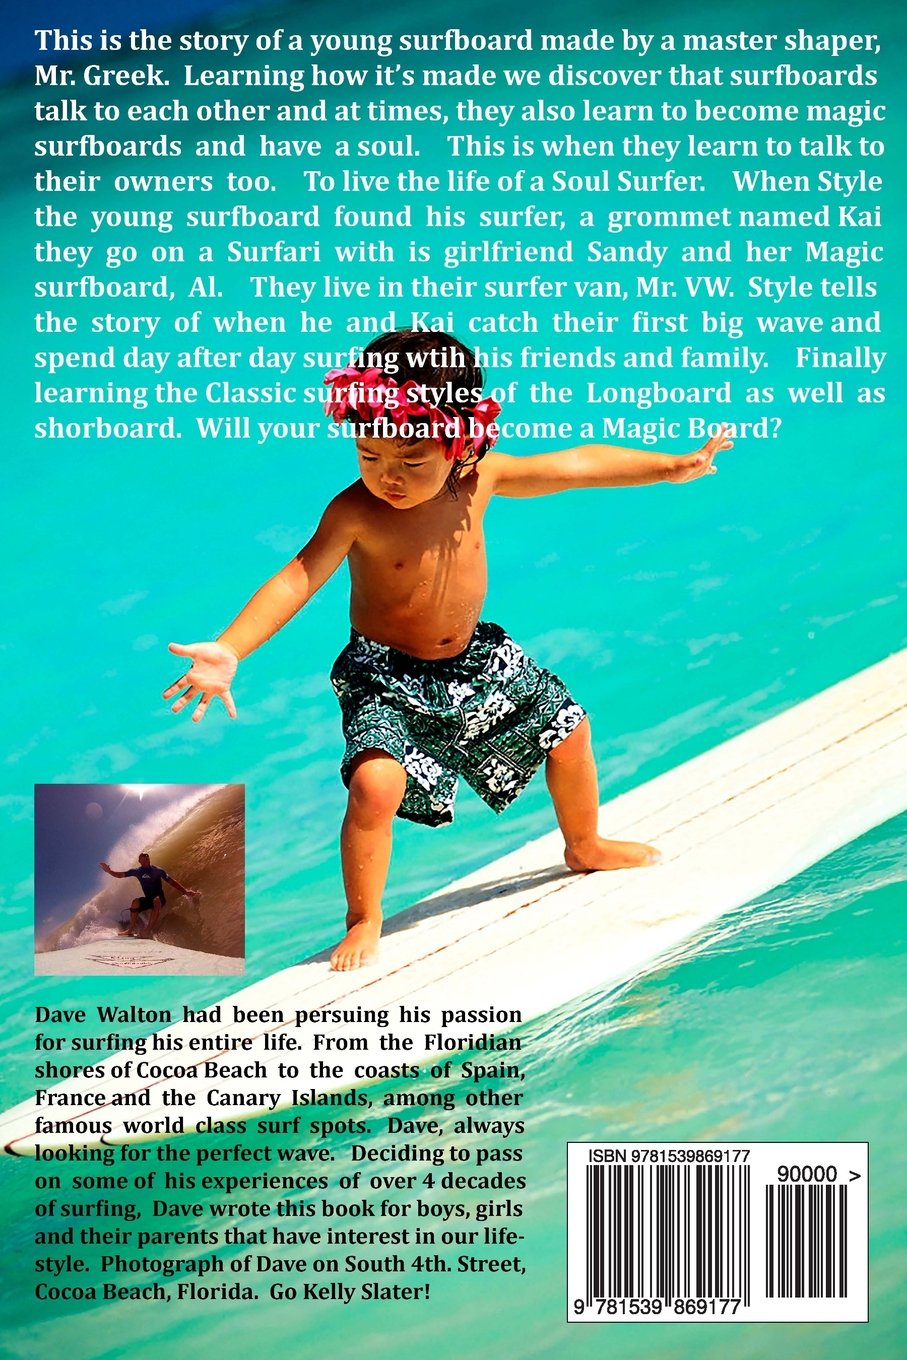 My Life As A Magic Surfboard: Magic Surfboard: Amazon.es: Ash Lingam ...